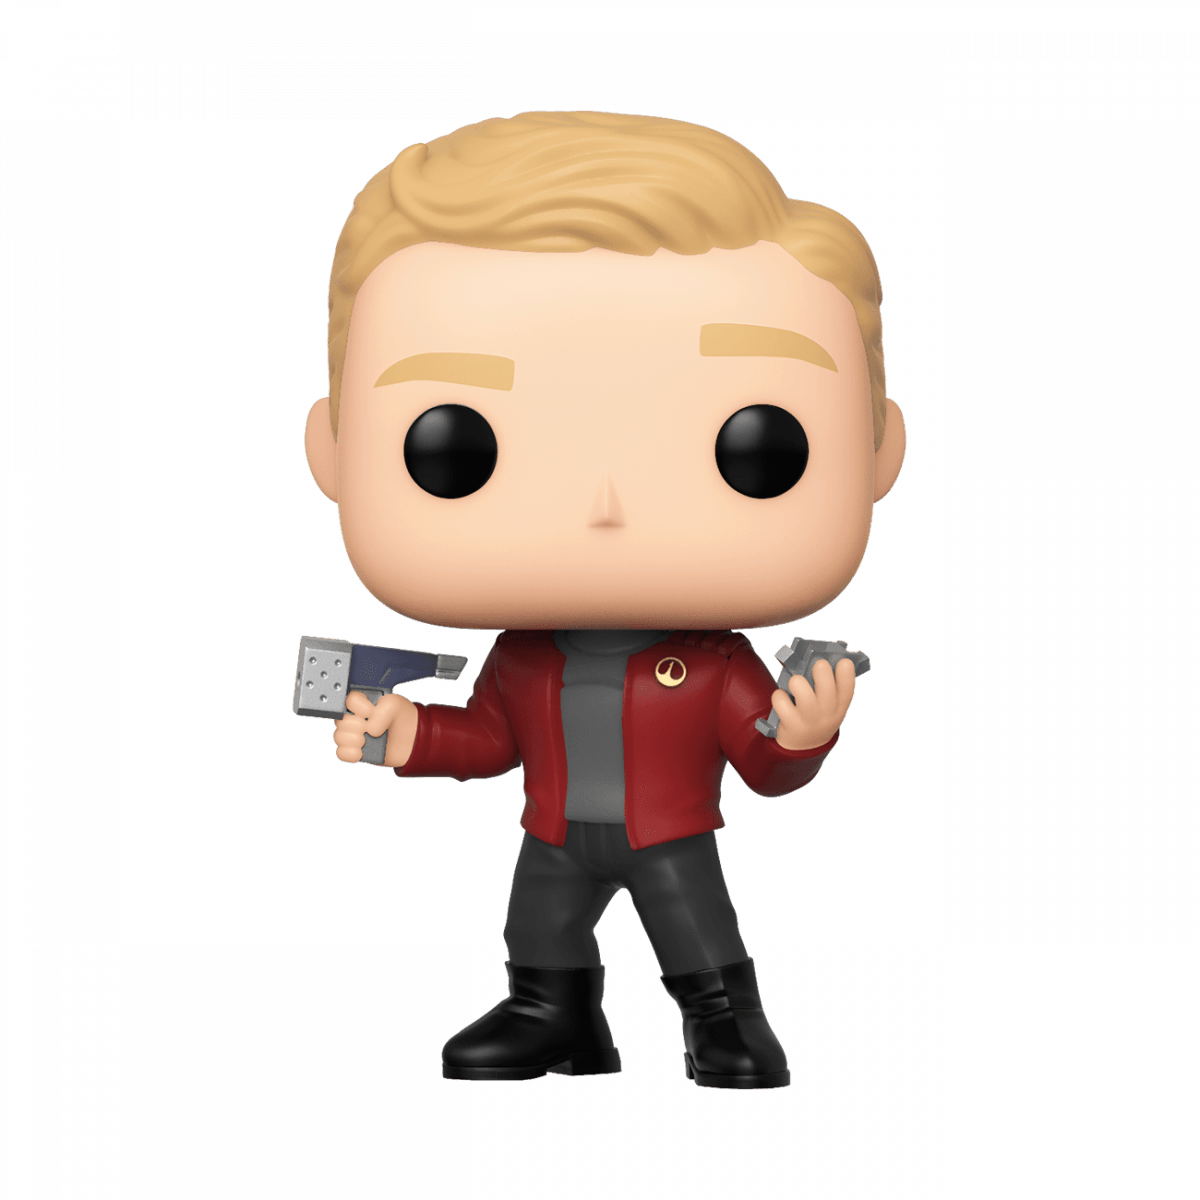 Black Mirror gets the Pop! Vinyl treatment from Funko